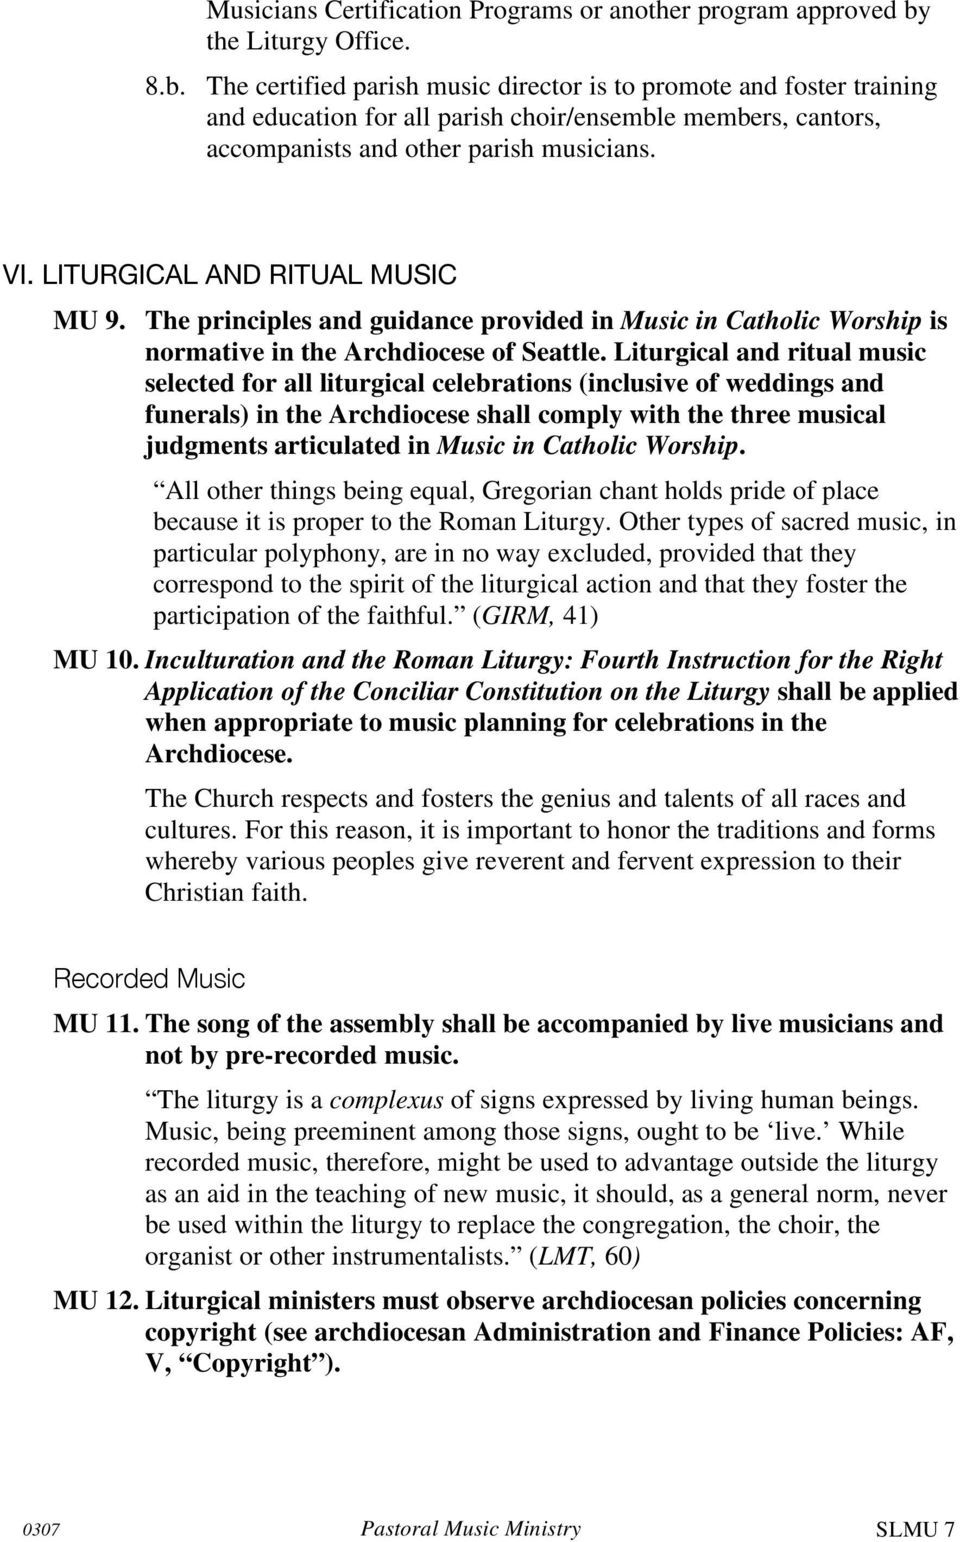 VI. LITURGICAL AND RITUAL MUSIC MU 9. The principles and guidance provided in Music in Catholic Worship is normative in the Archdiocese of Seattle.